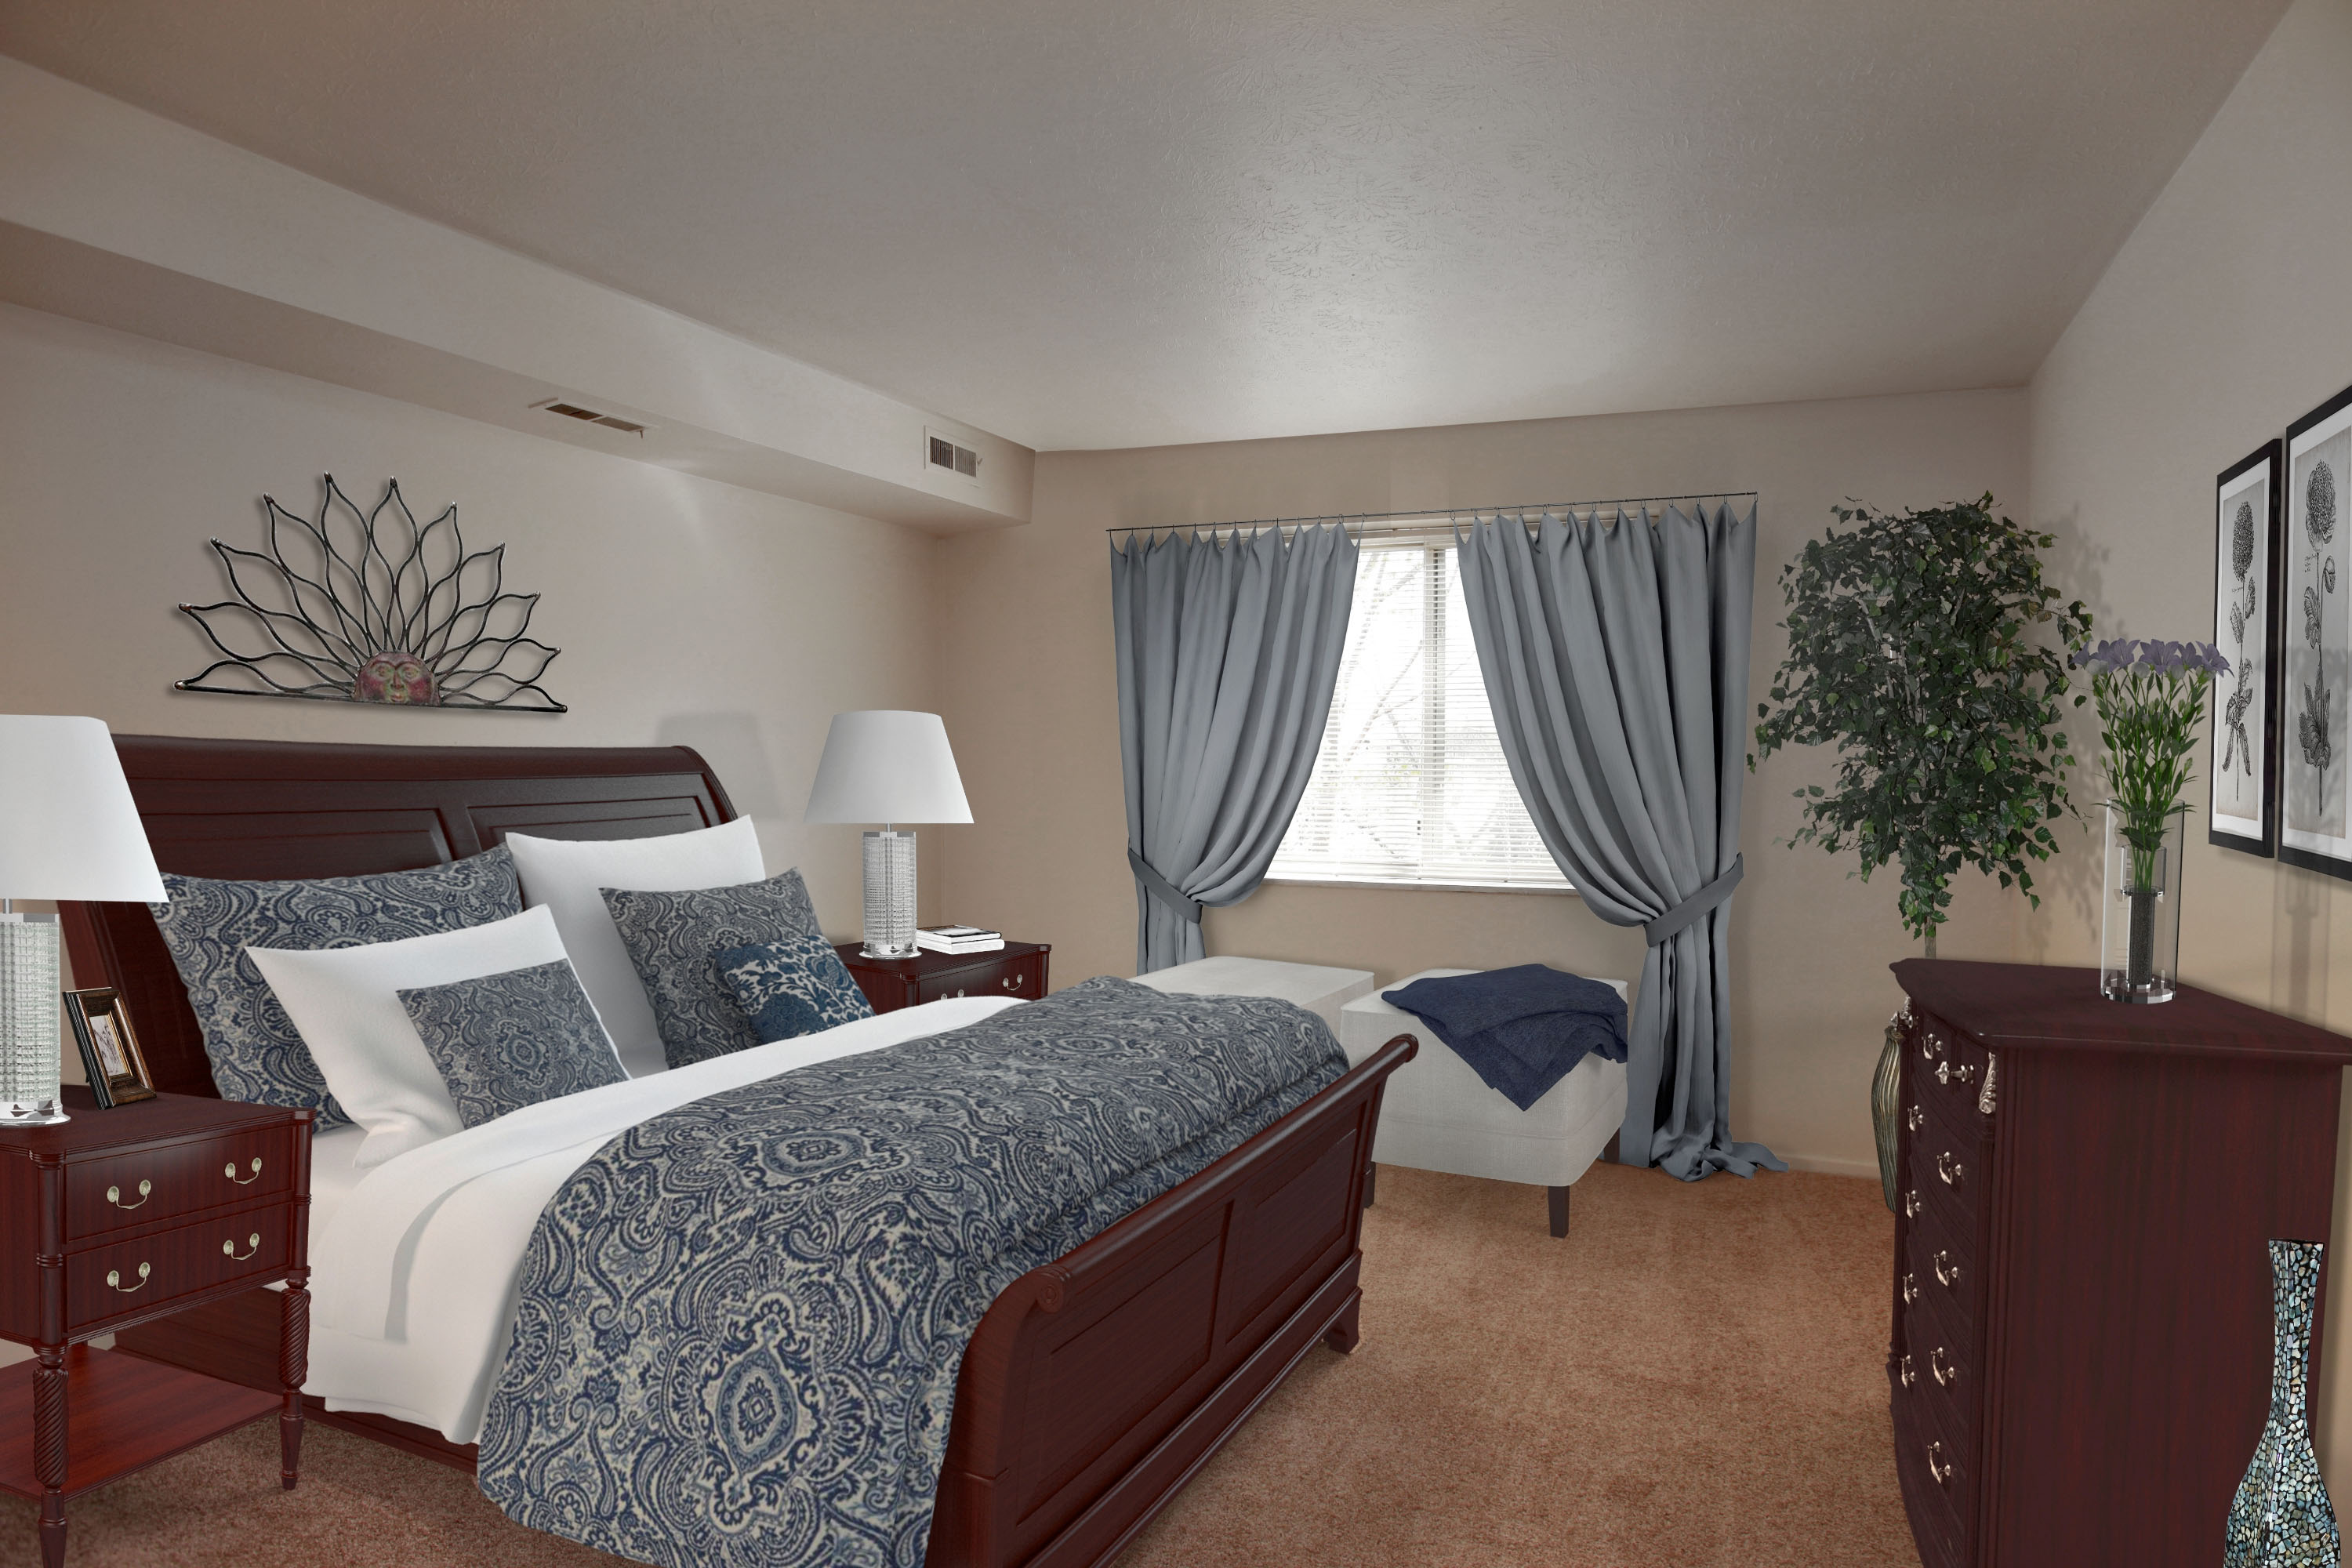 2D Bedroom #1 Furnished at the Greenridge on Euclid Apartments in Euclid, OH